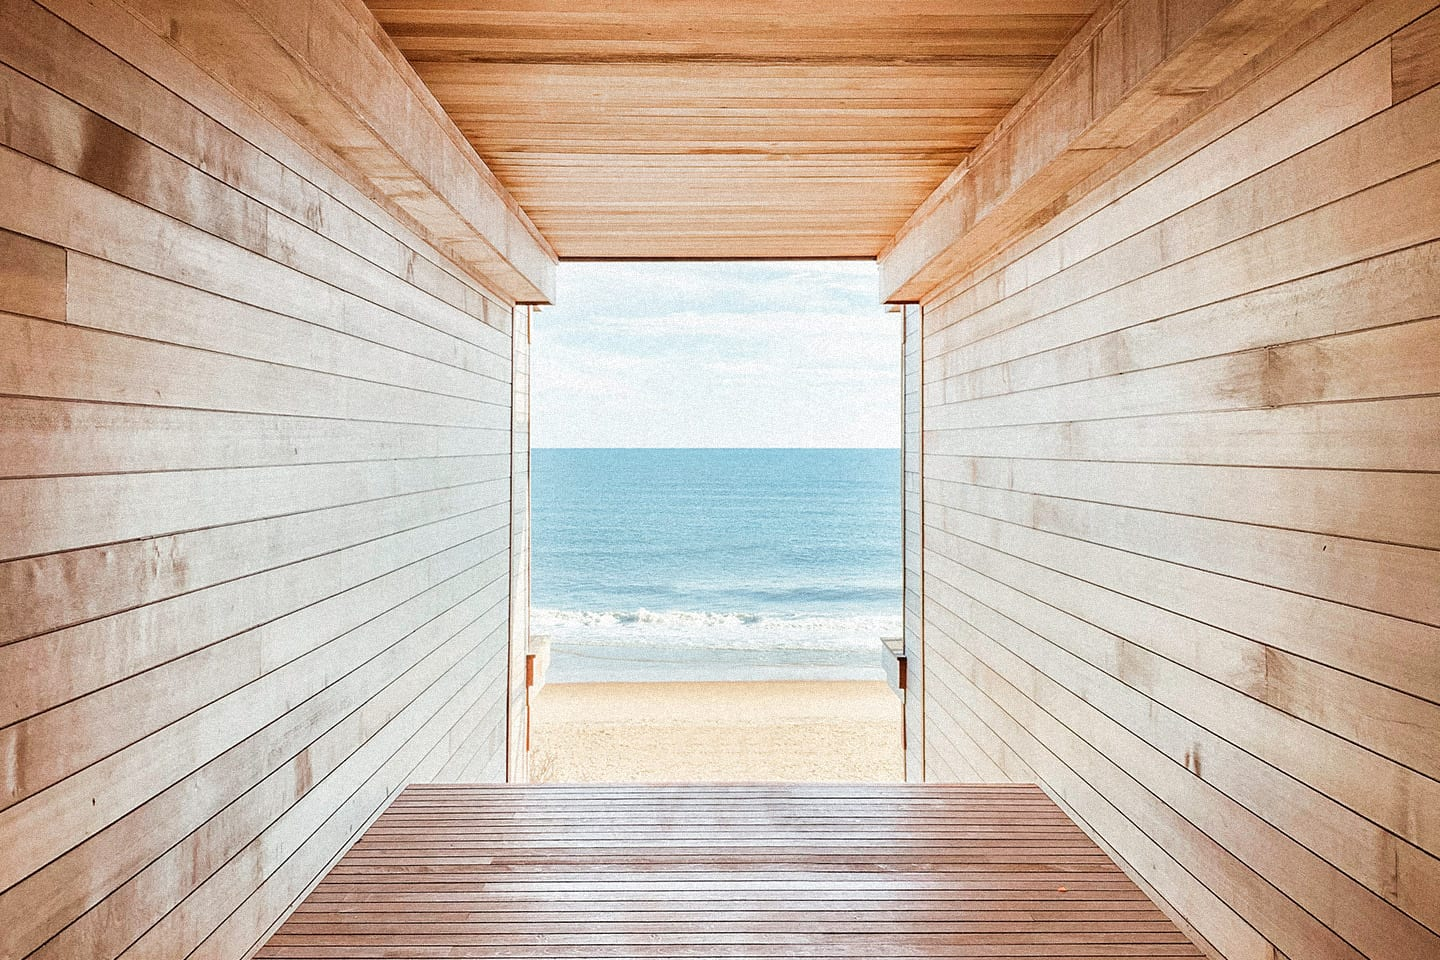 Enclosed walkway looking out at the beach.